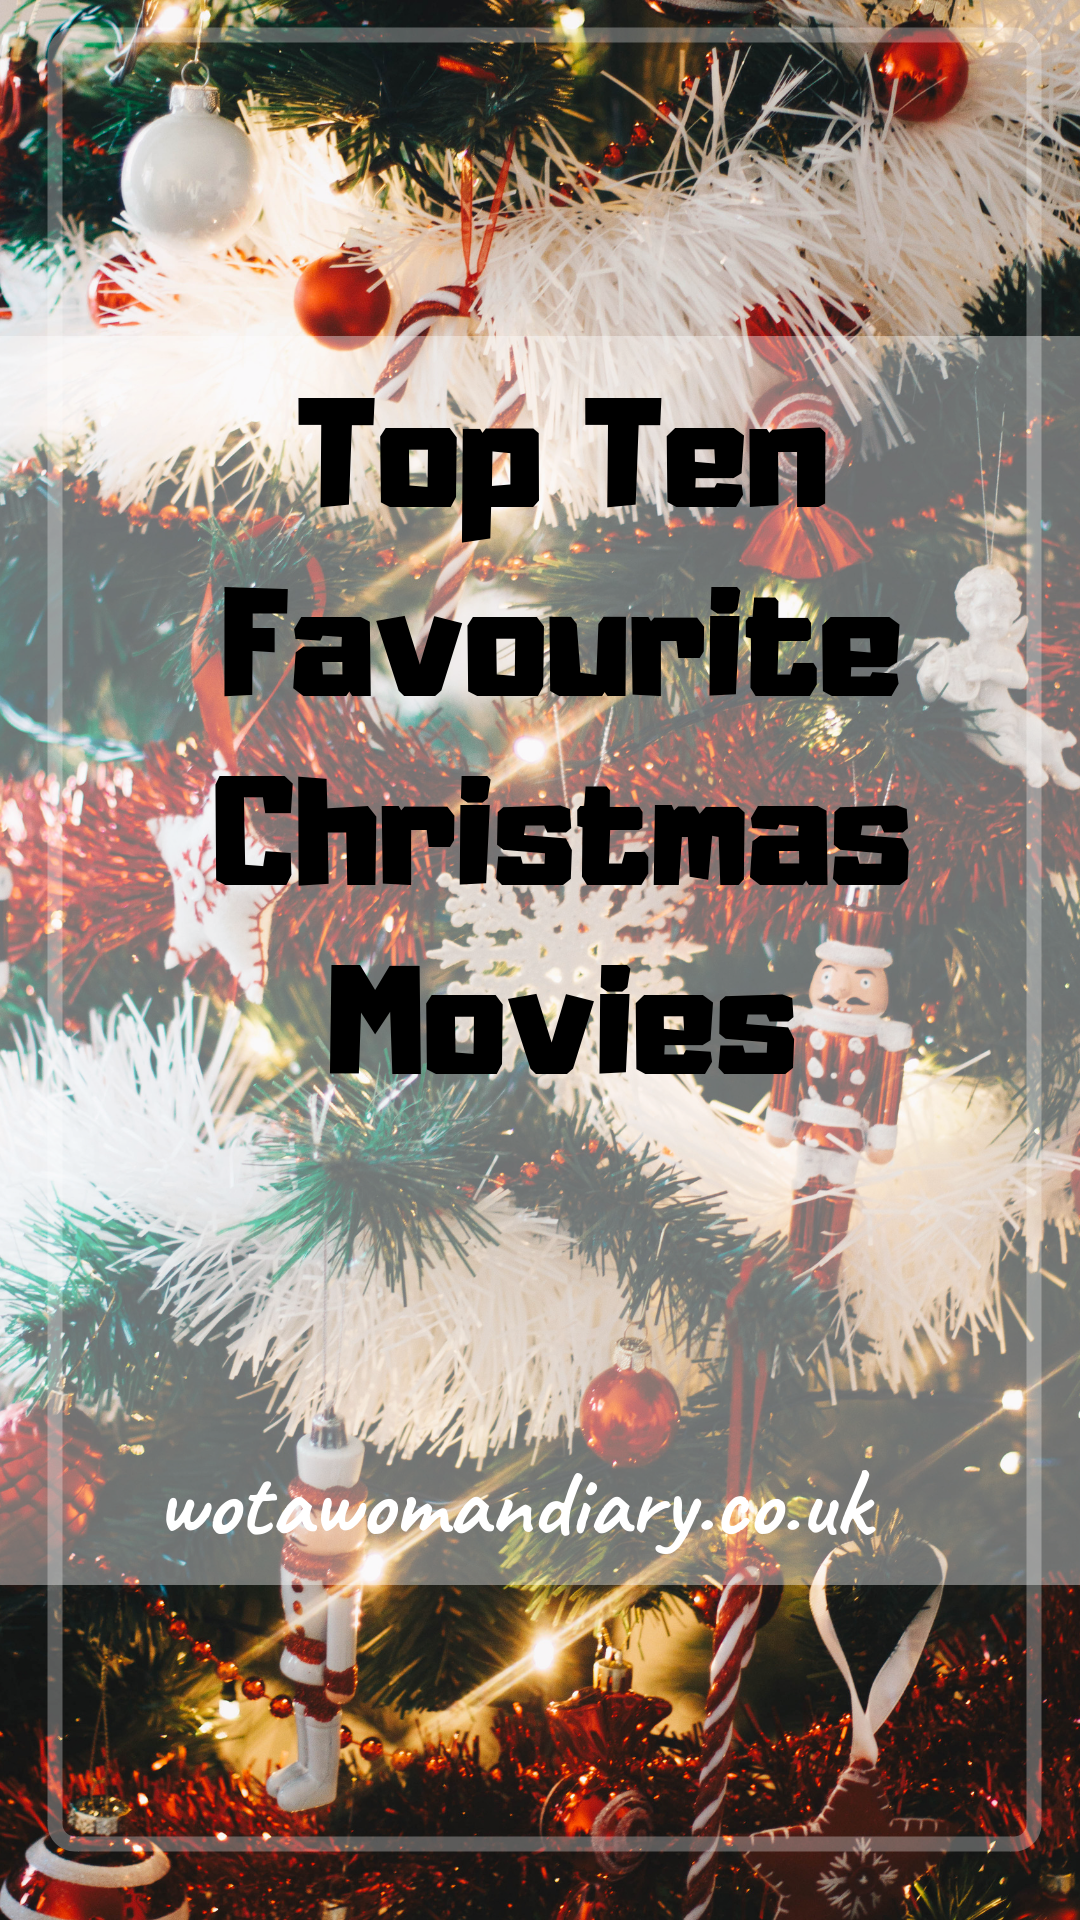 Top Ten Favourite Christmas Movies